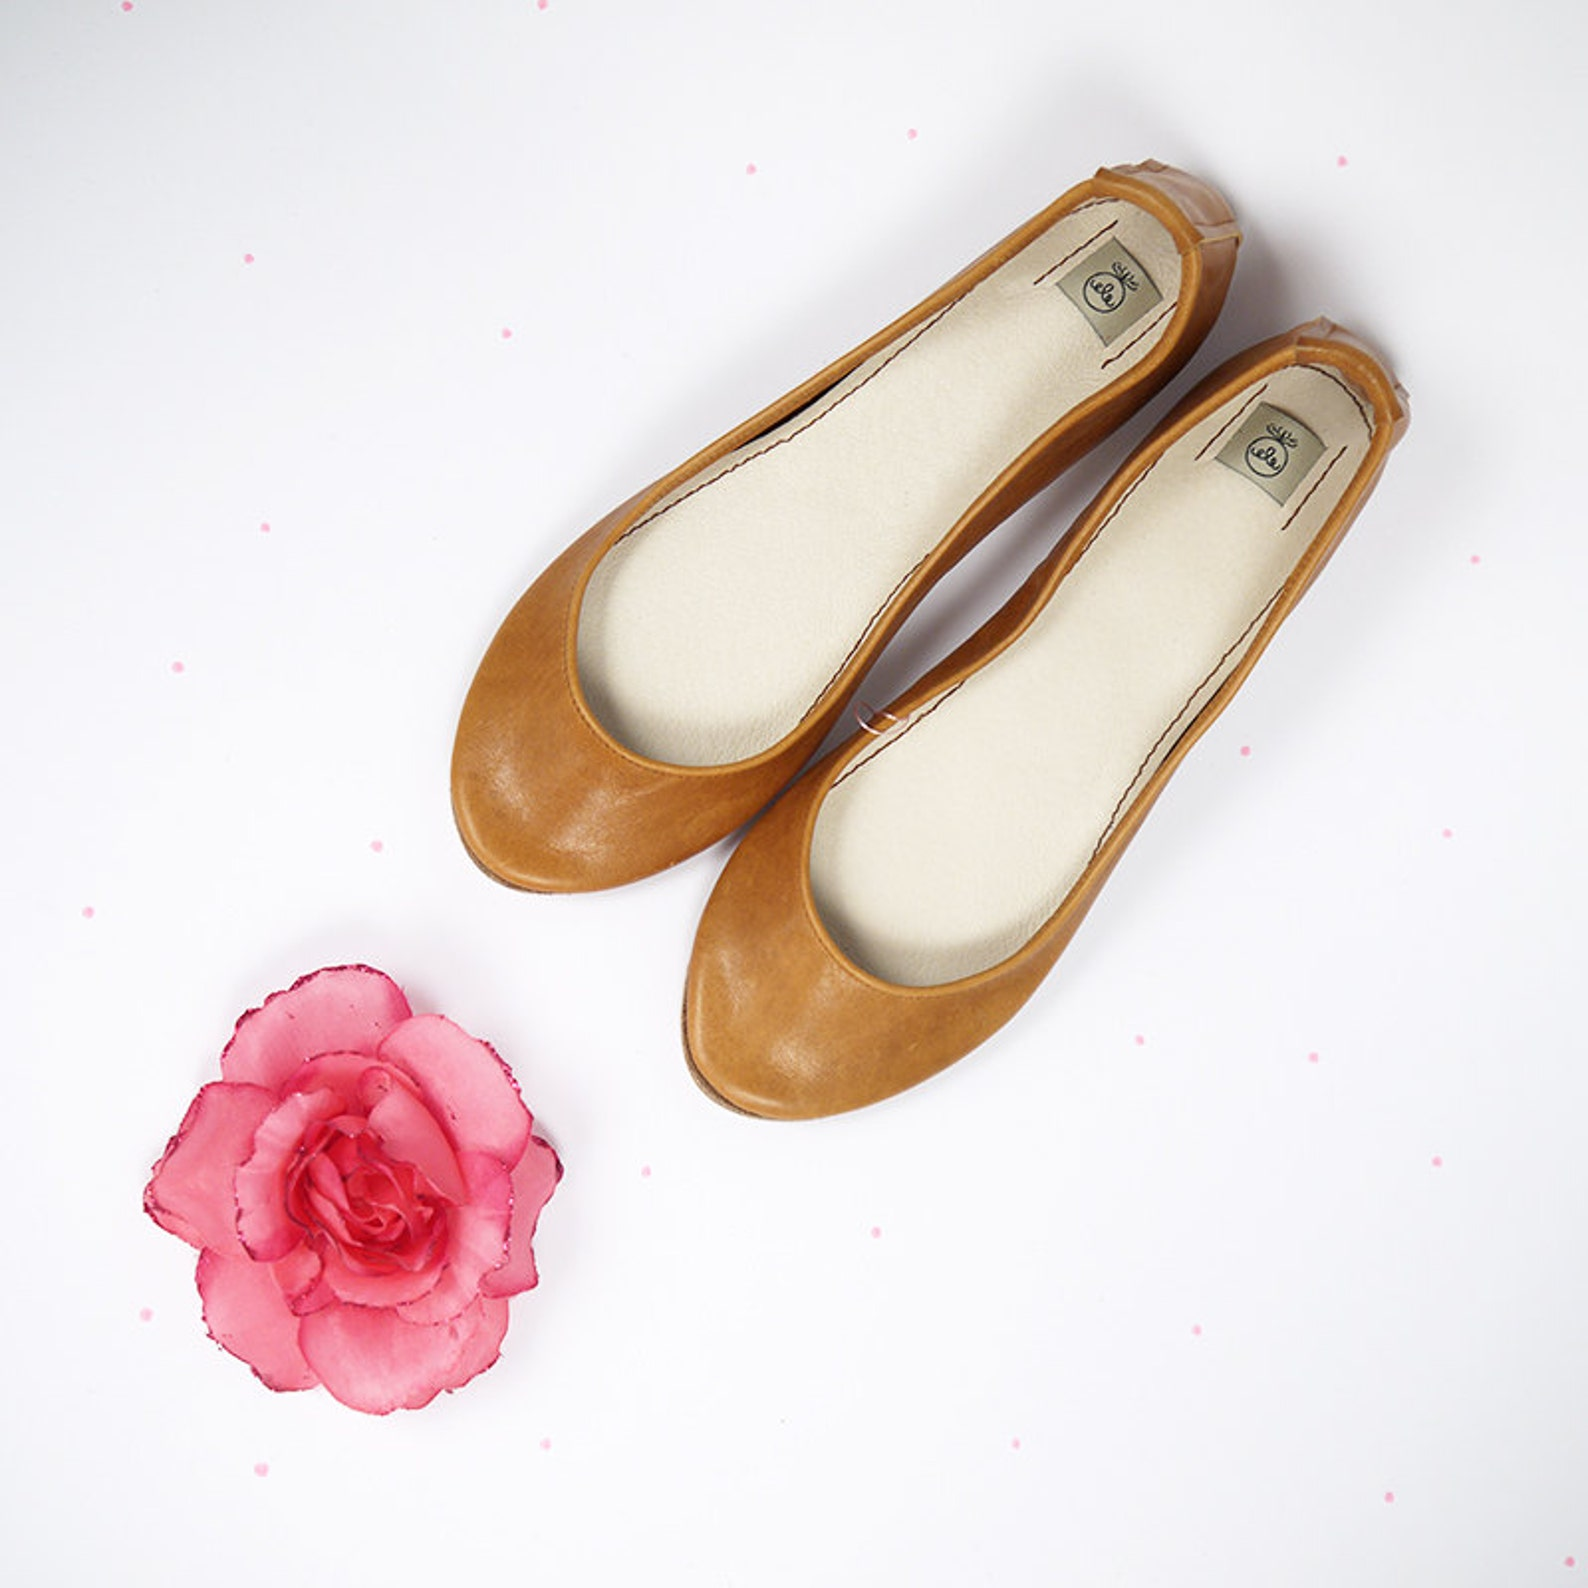 leather shoes. ballet flats. leather ballet flats. tan shoes. wedding shoes. bridal shoes. gift for her. personalized gift. hand